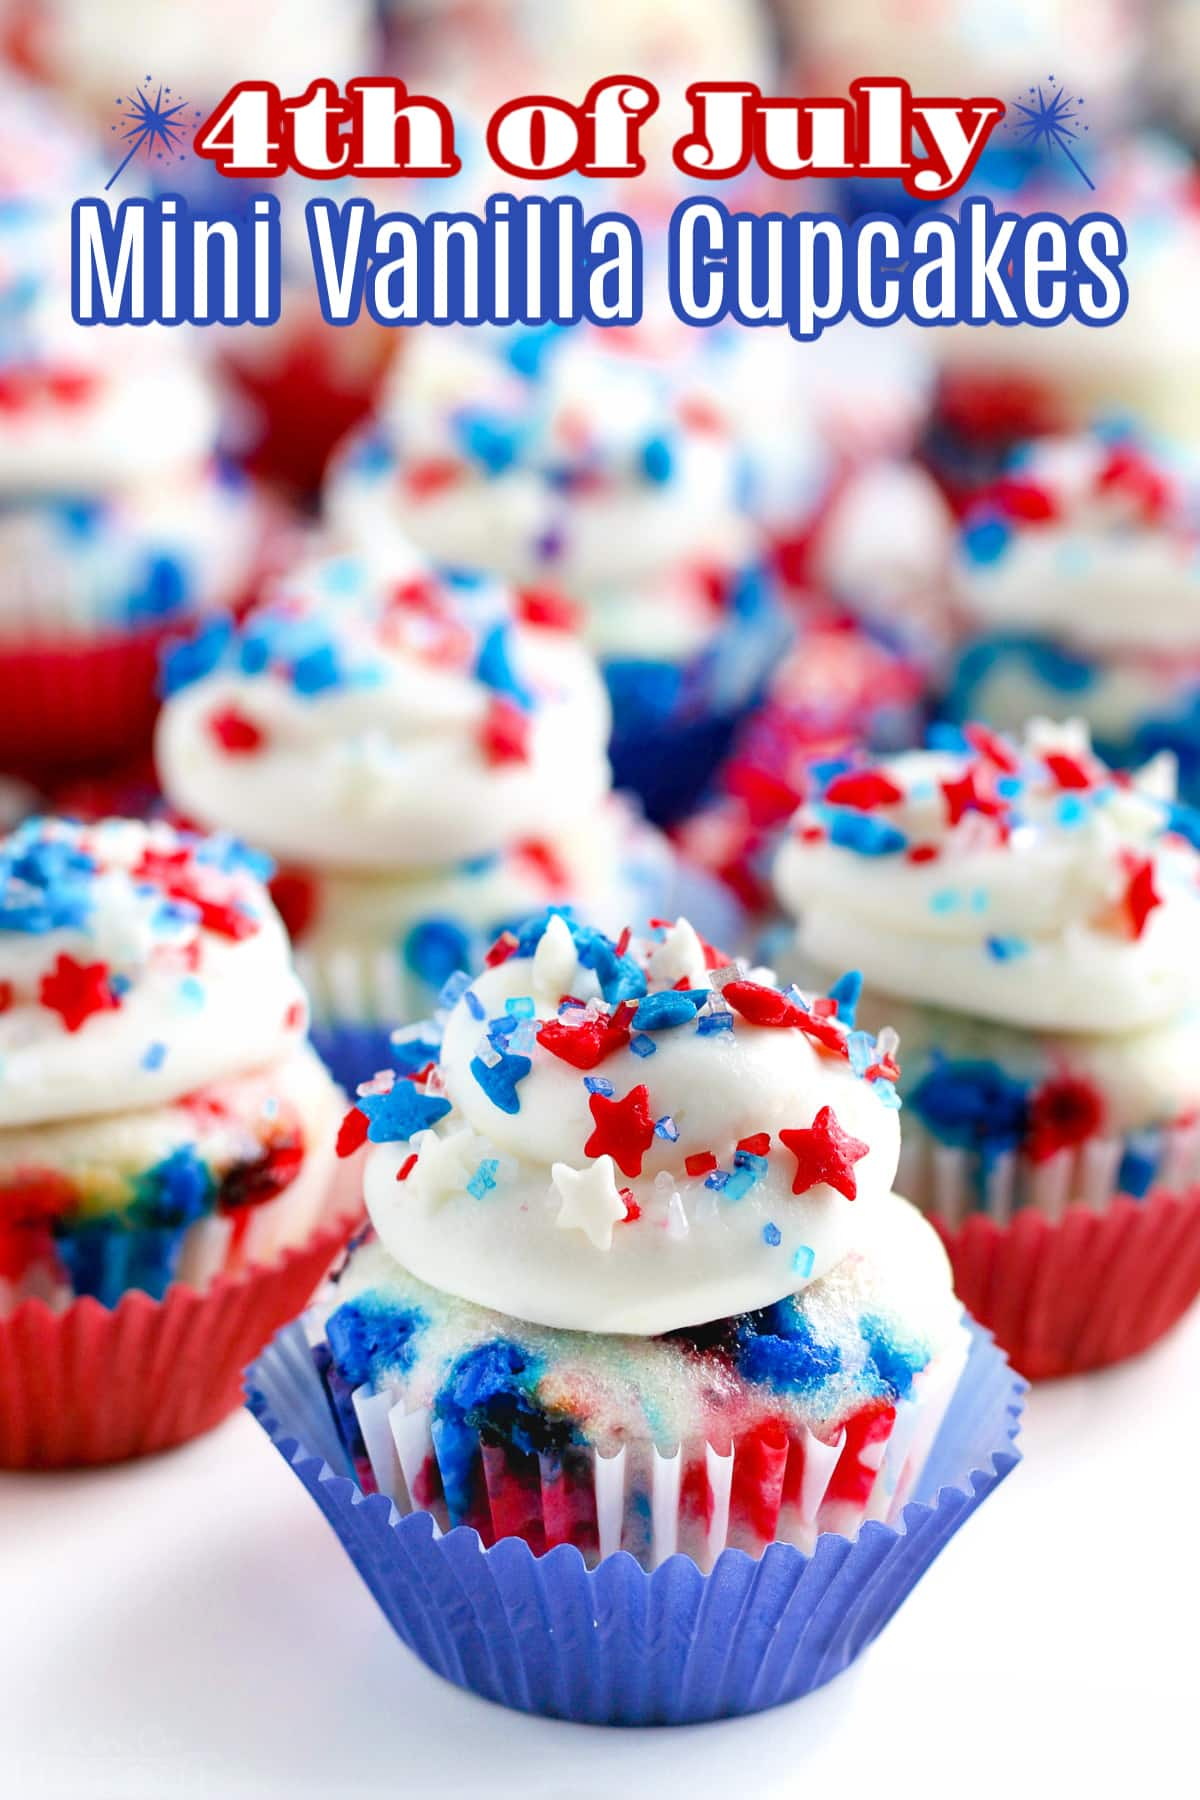 close up of 4th of July Mini vanilla Cupcakes with star sprinkles and text overlay